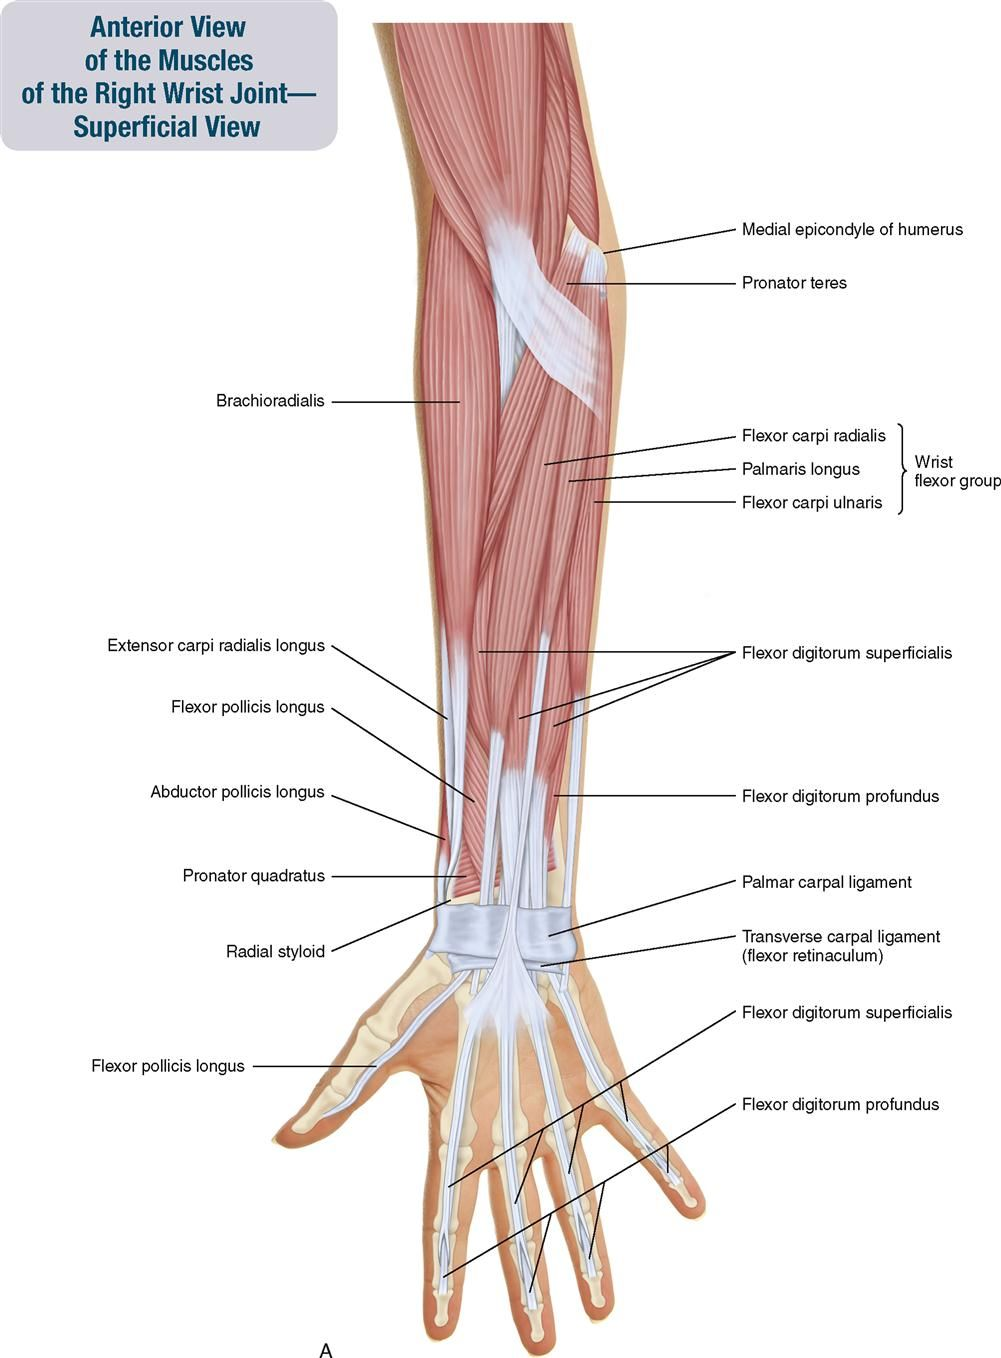 7. Muscles of the Forearm and Hand | Musculoskeletal Key | Anatomy ...